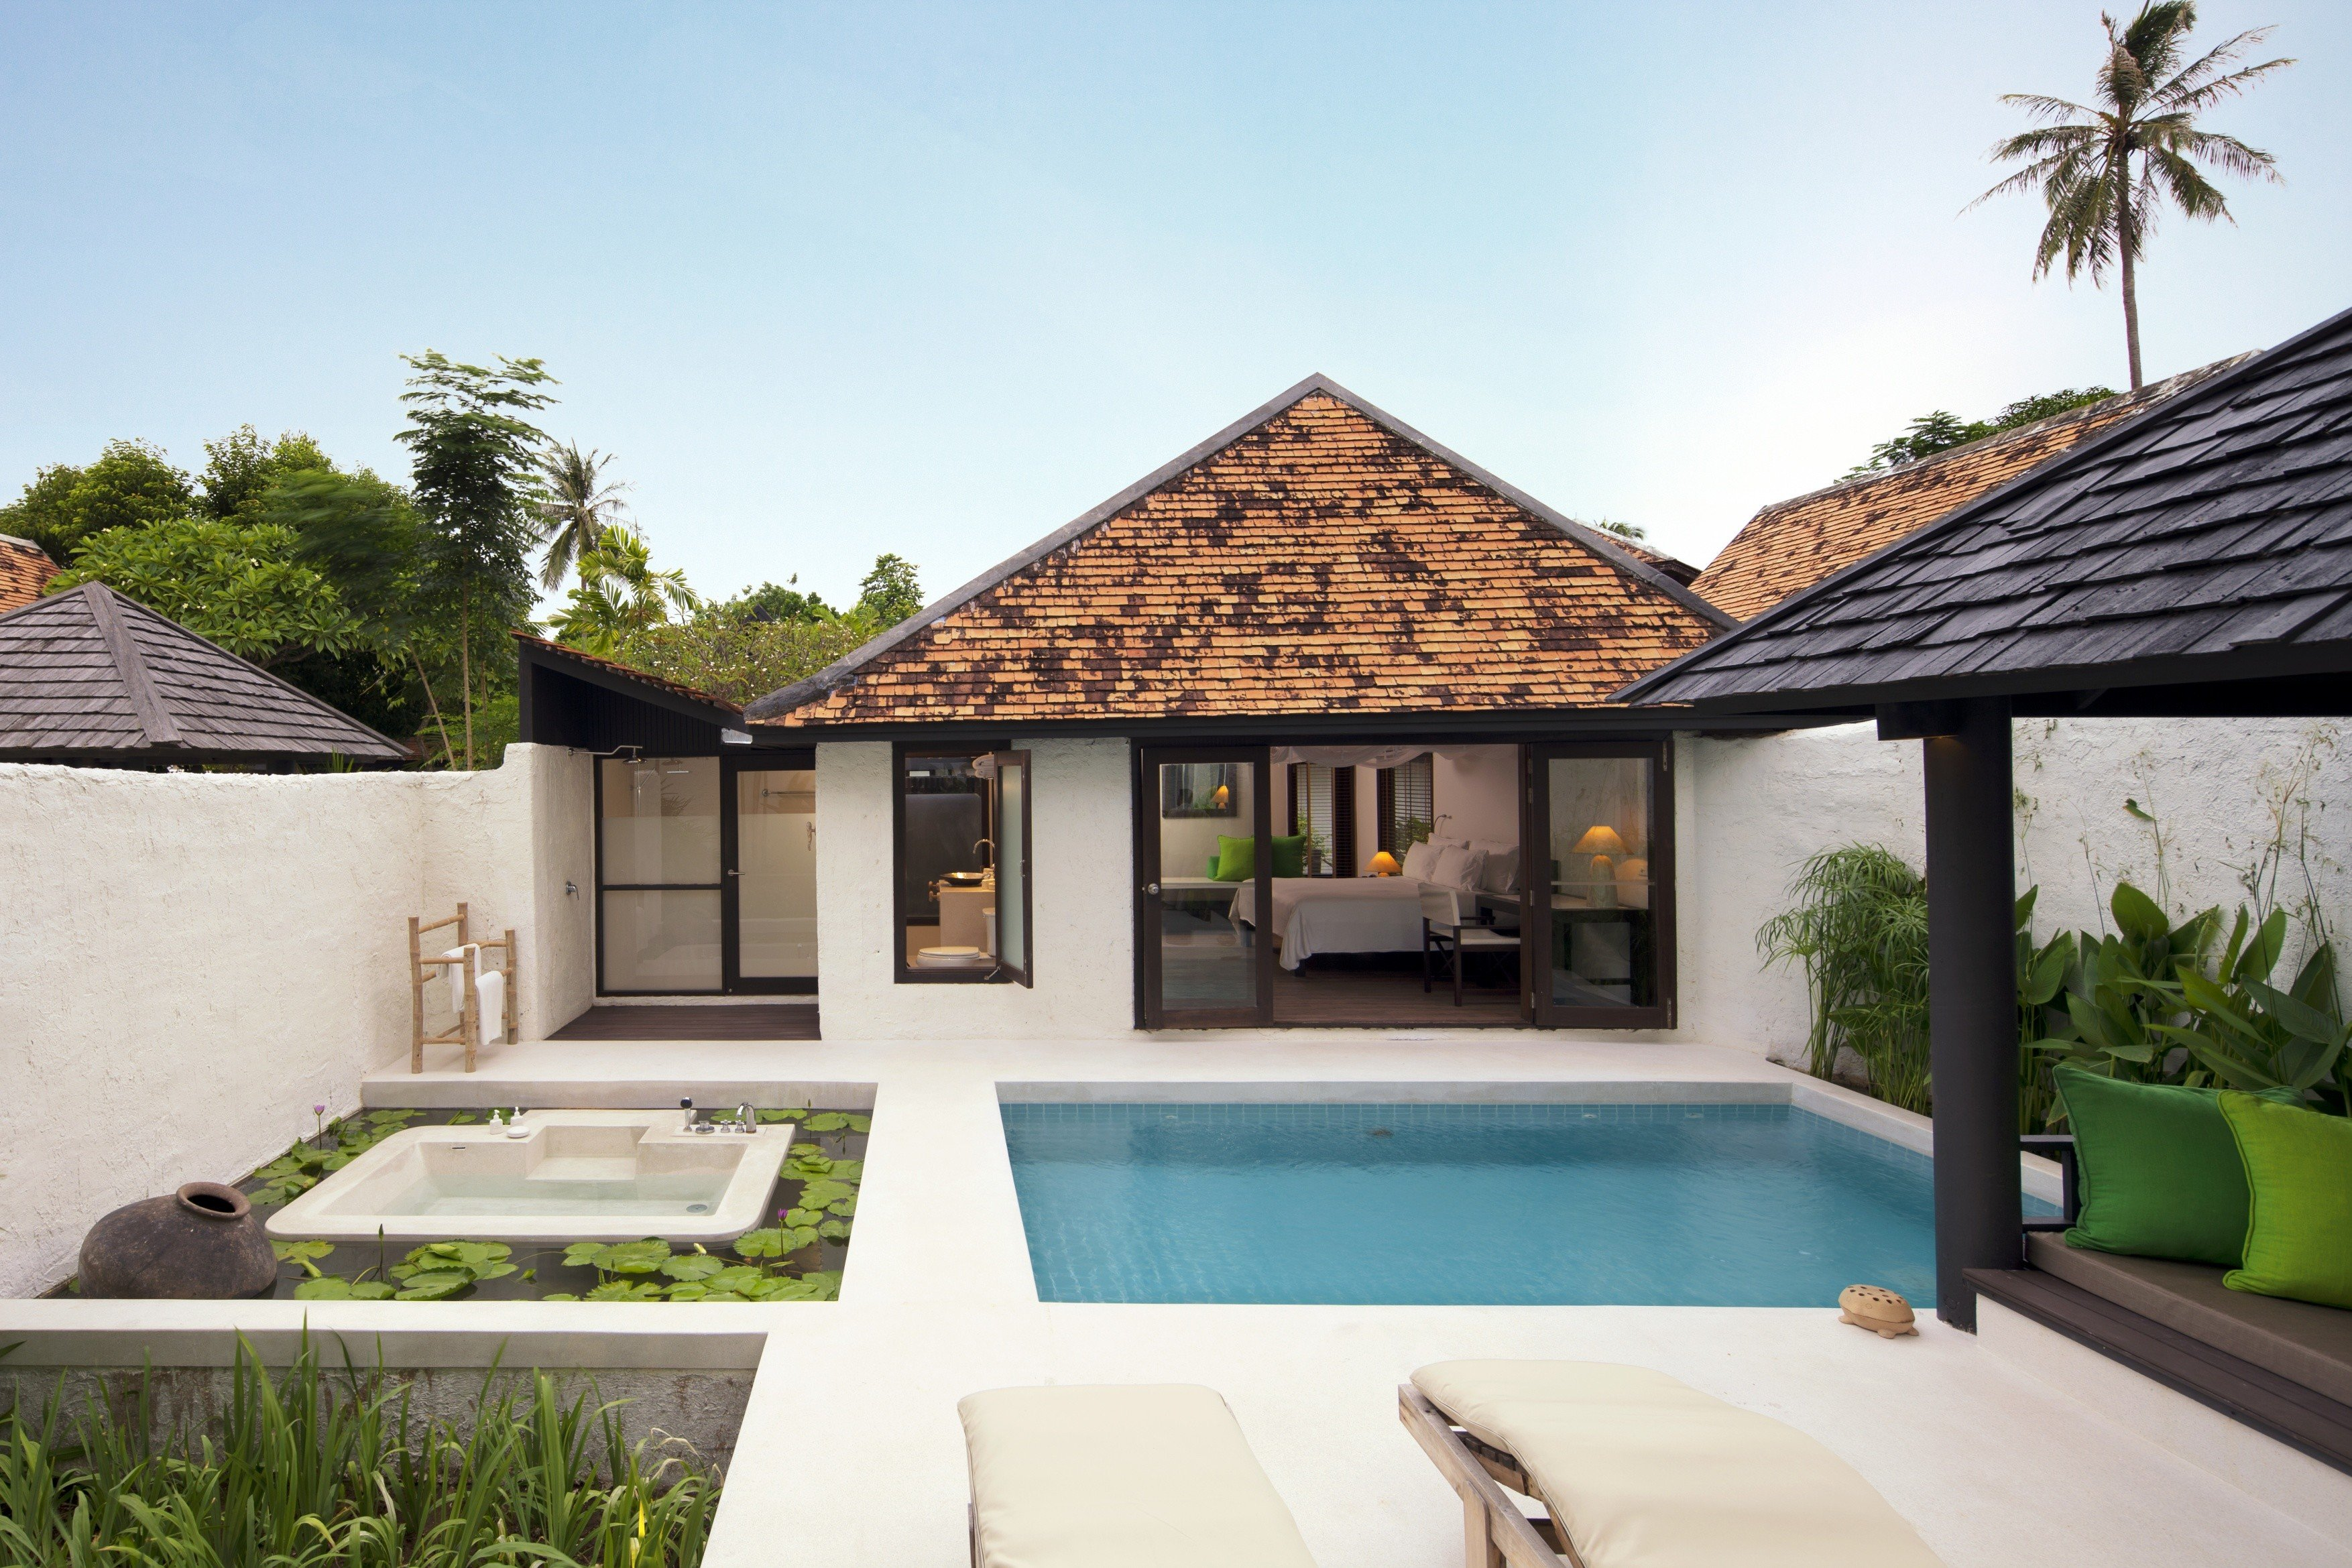 Elegant Luxury Modern Pool Villa building property house home green Resort swimming pool cottage backyard farmhouse mansion outdoor structure condominium